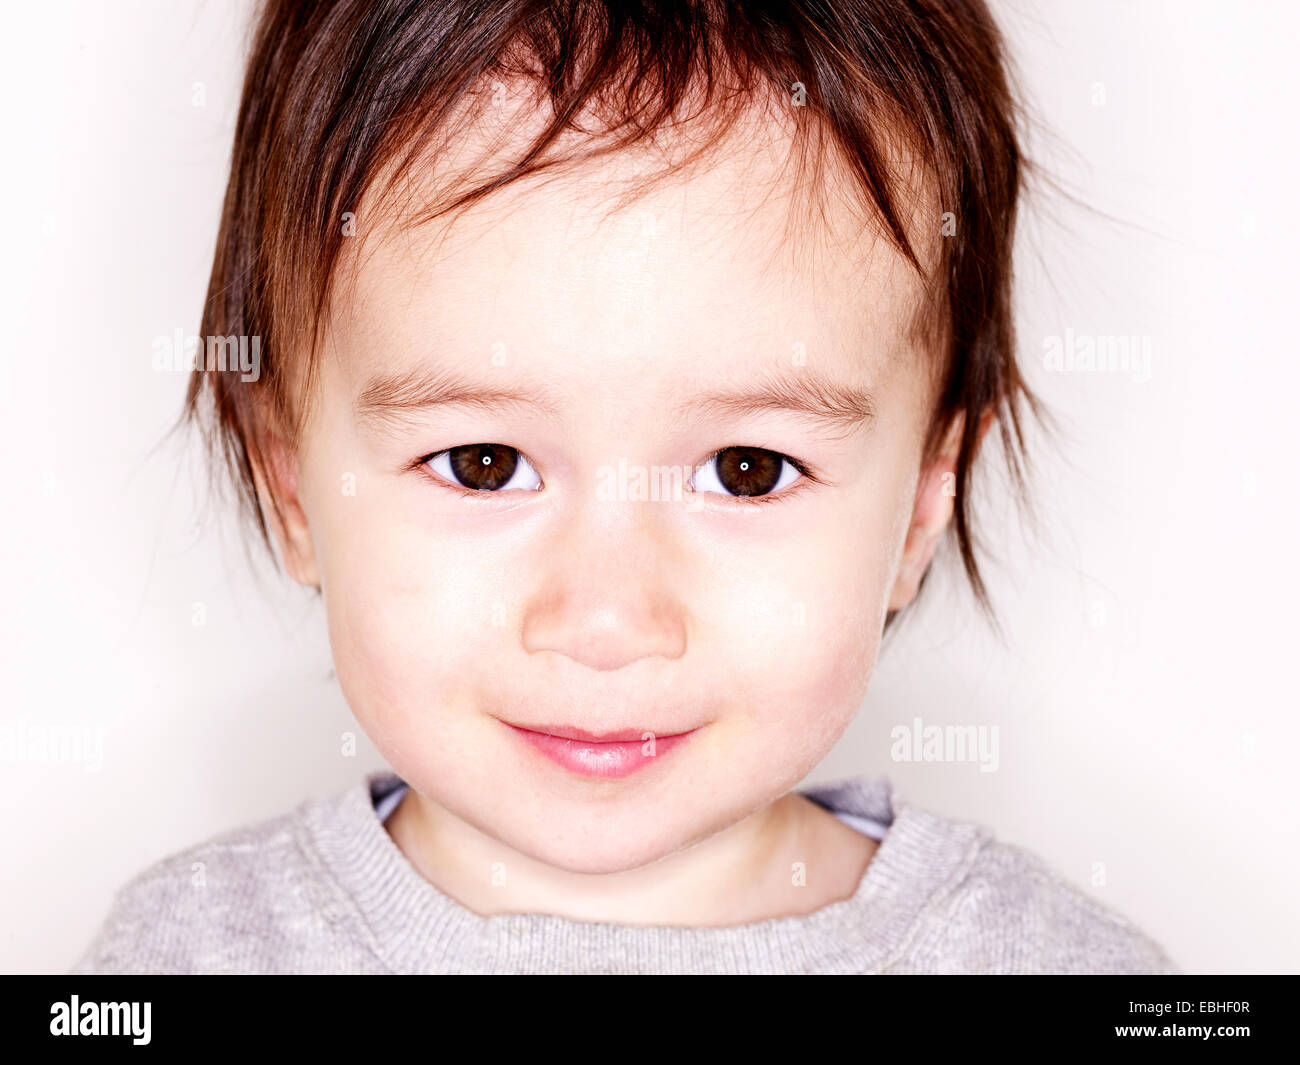 Close up studio portrait of smiling male toddler - Stock Image